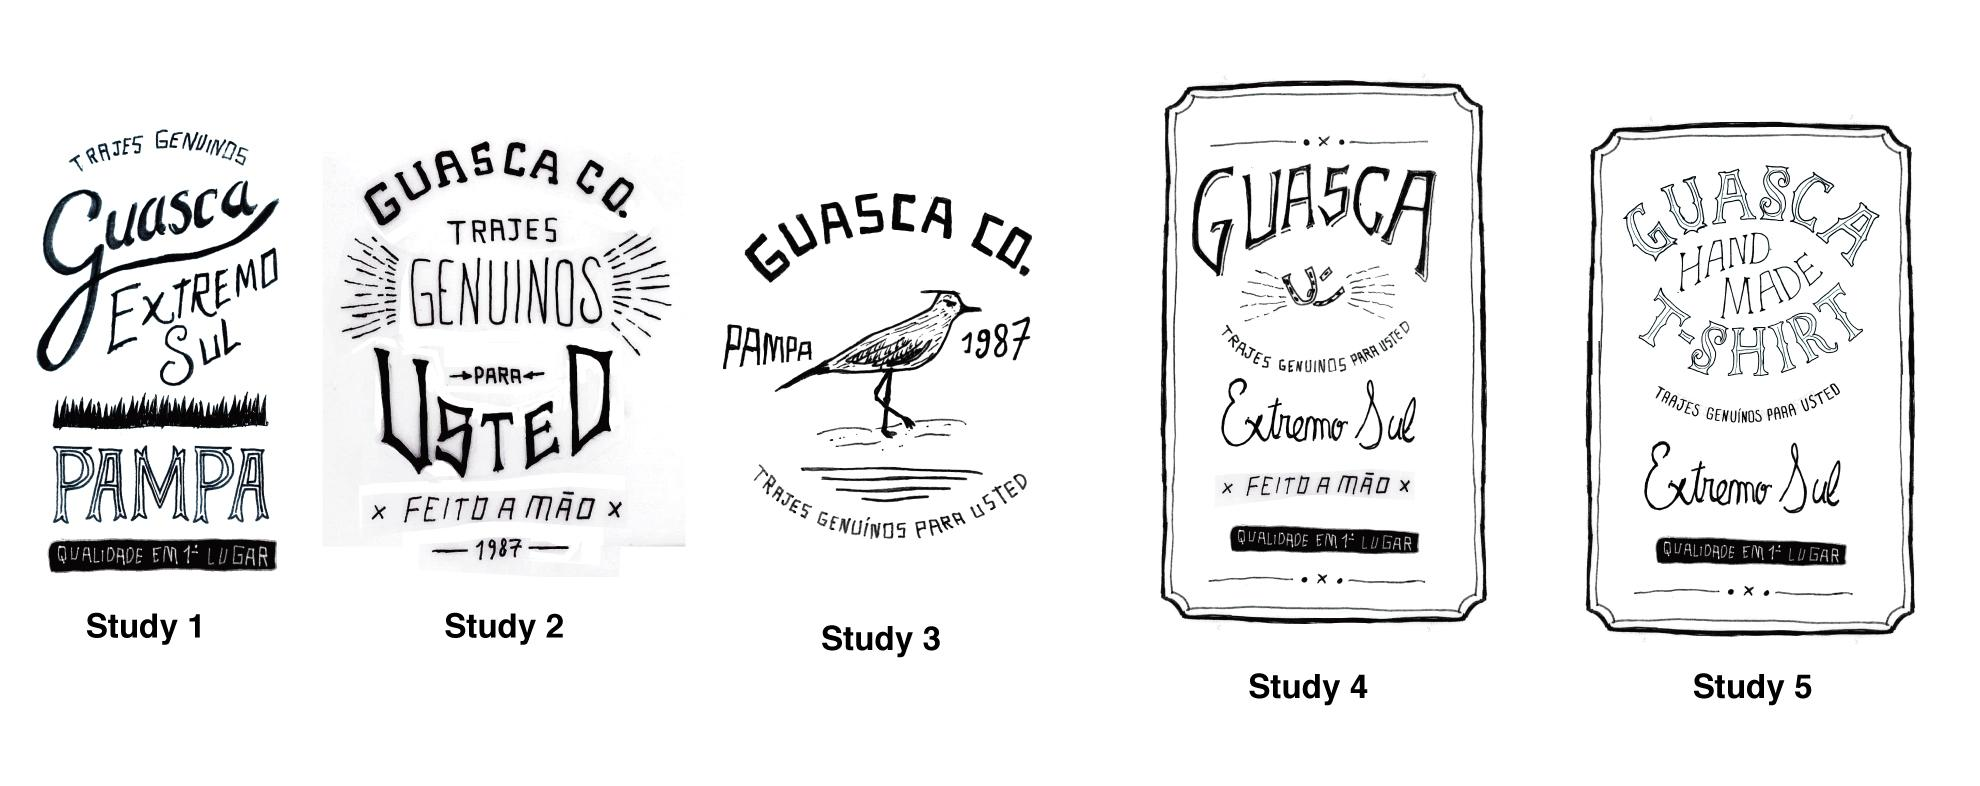 Guasca CO. - image 4 - student project